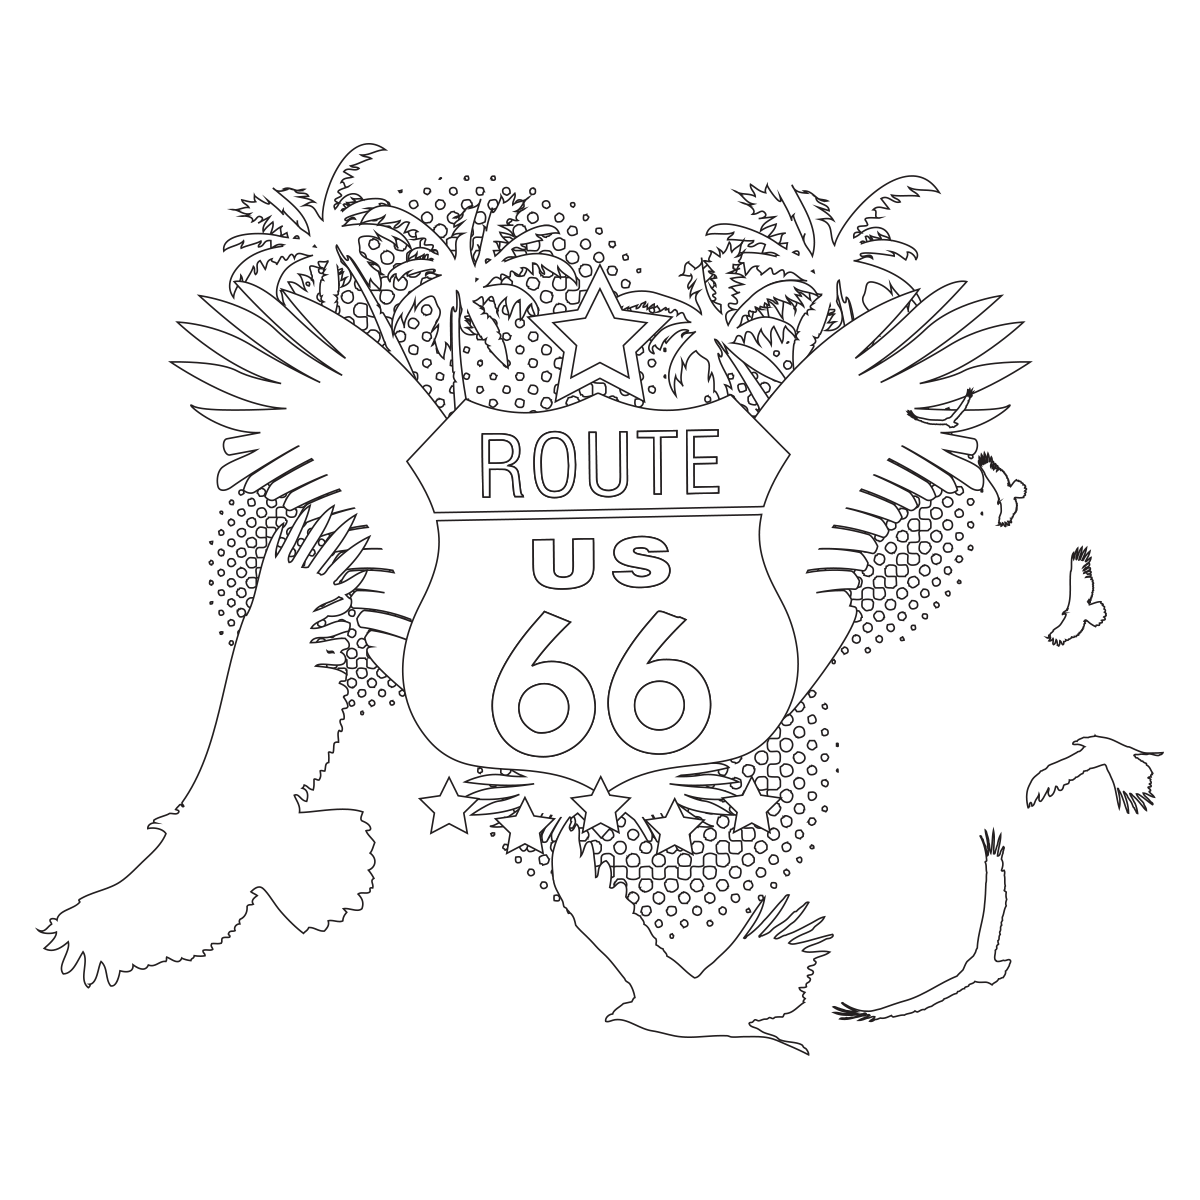 Route 66 Coloring Page Route 66 Coloring Pages